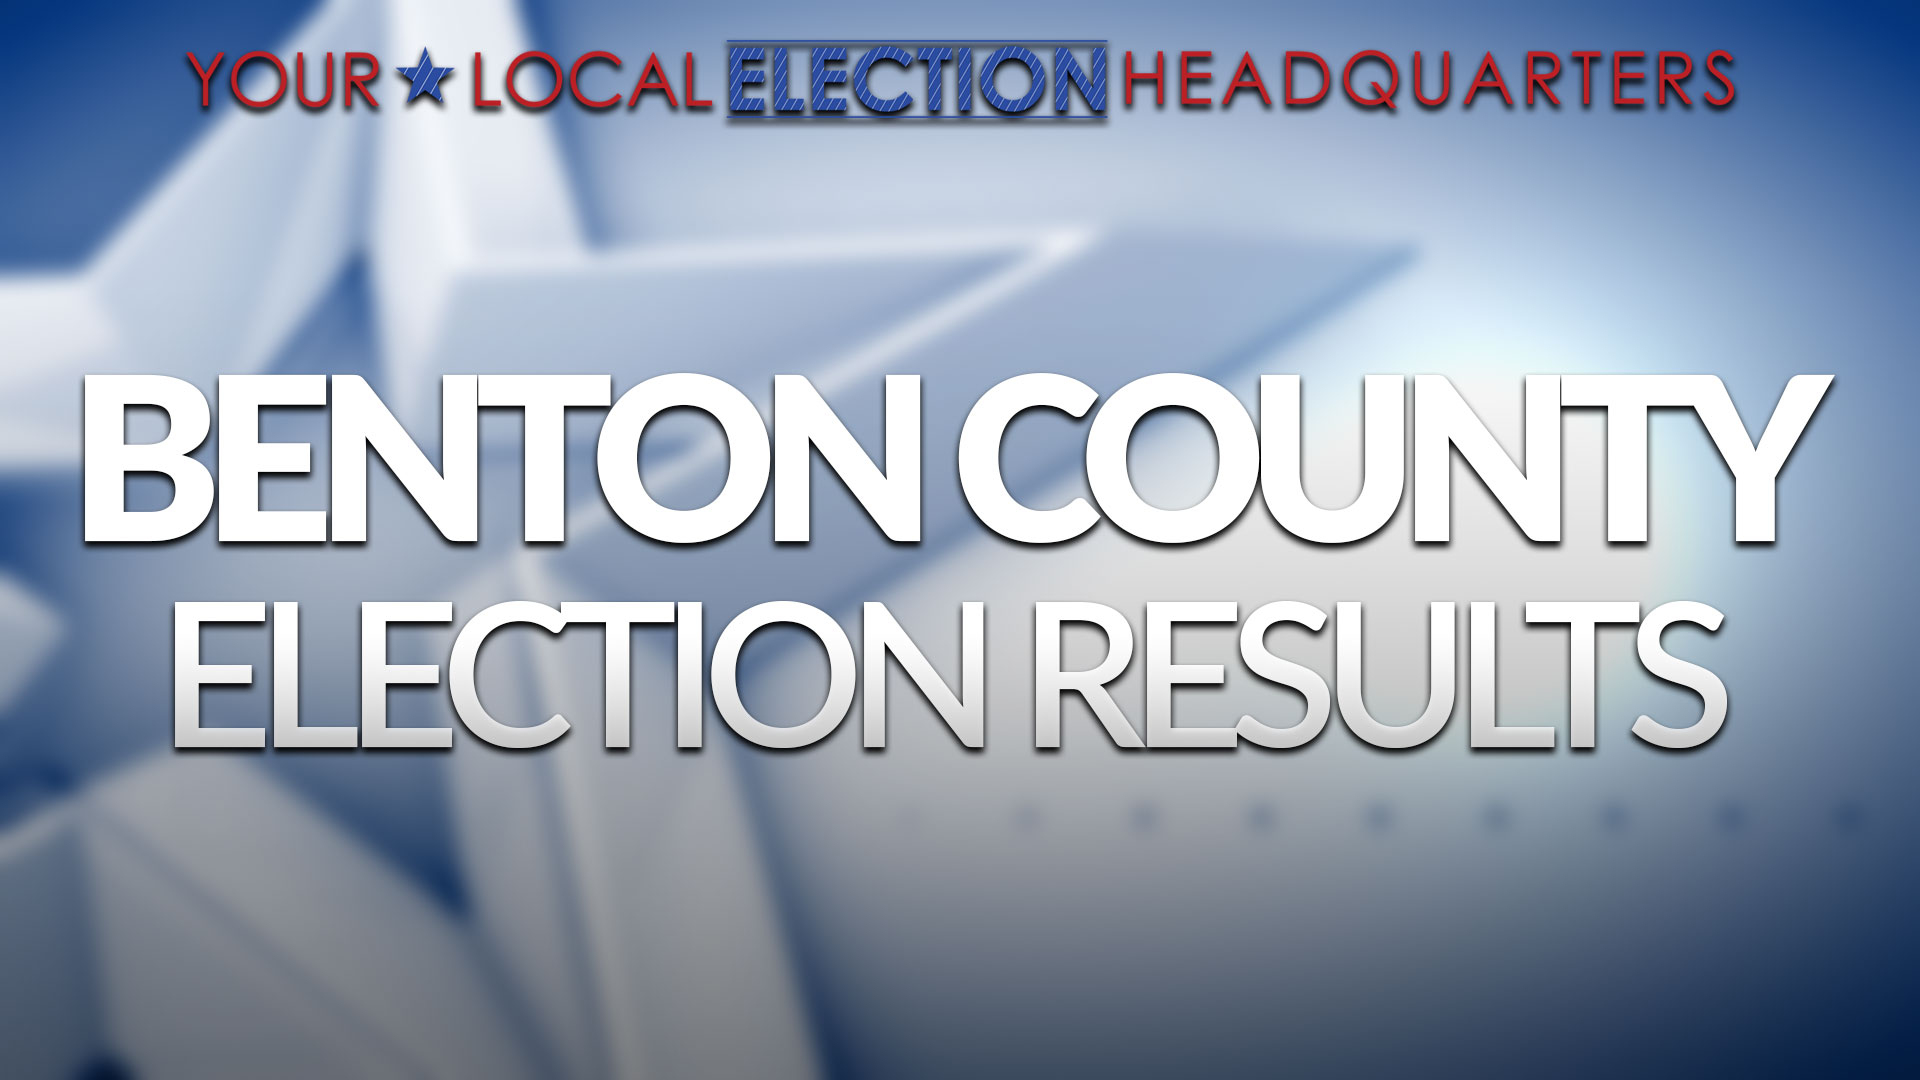 Benton County Election Results